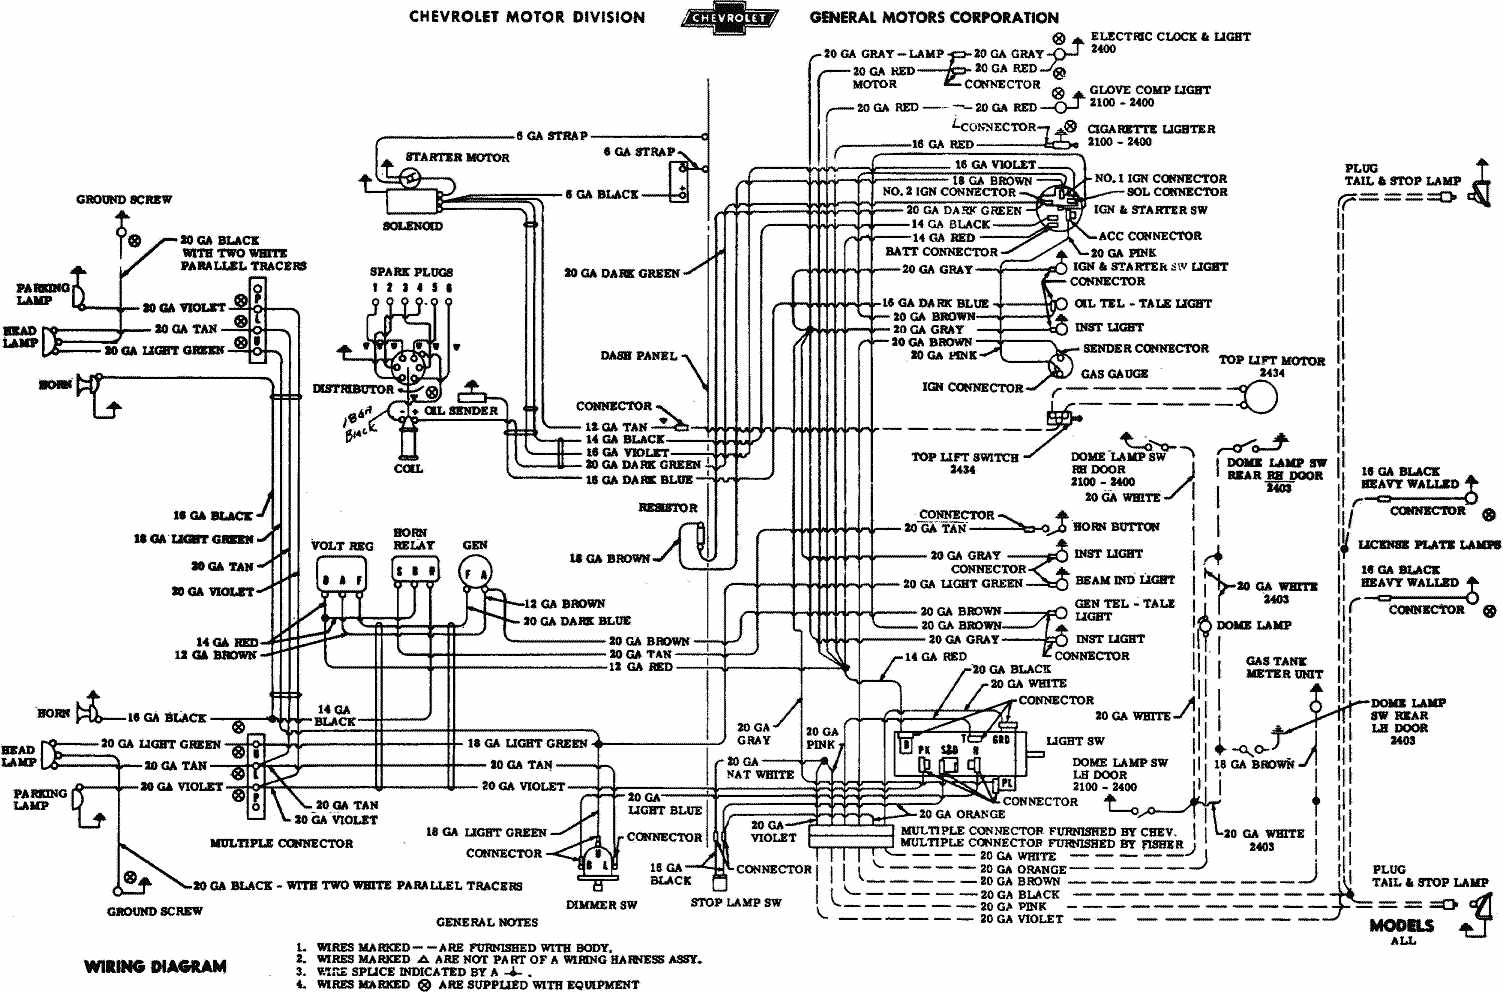 chevrolet wiring diagrams chevrolet wiring diagrams wiring diagram of 1955 chevrolet clic